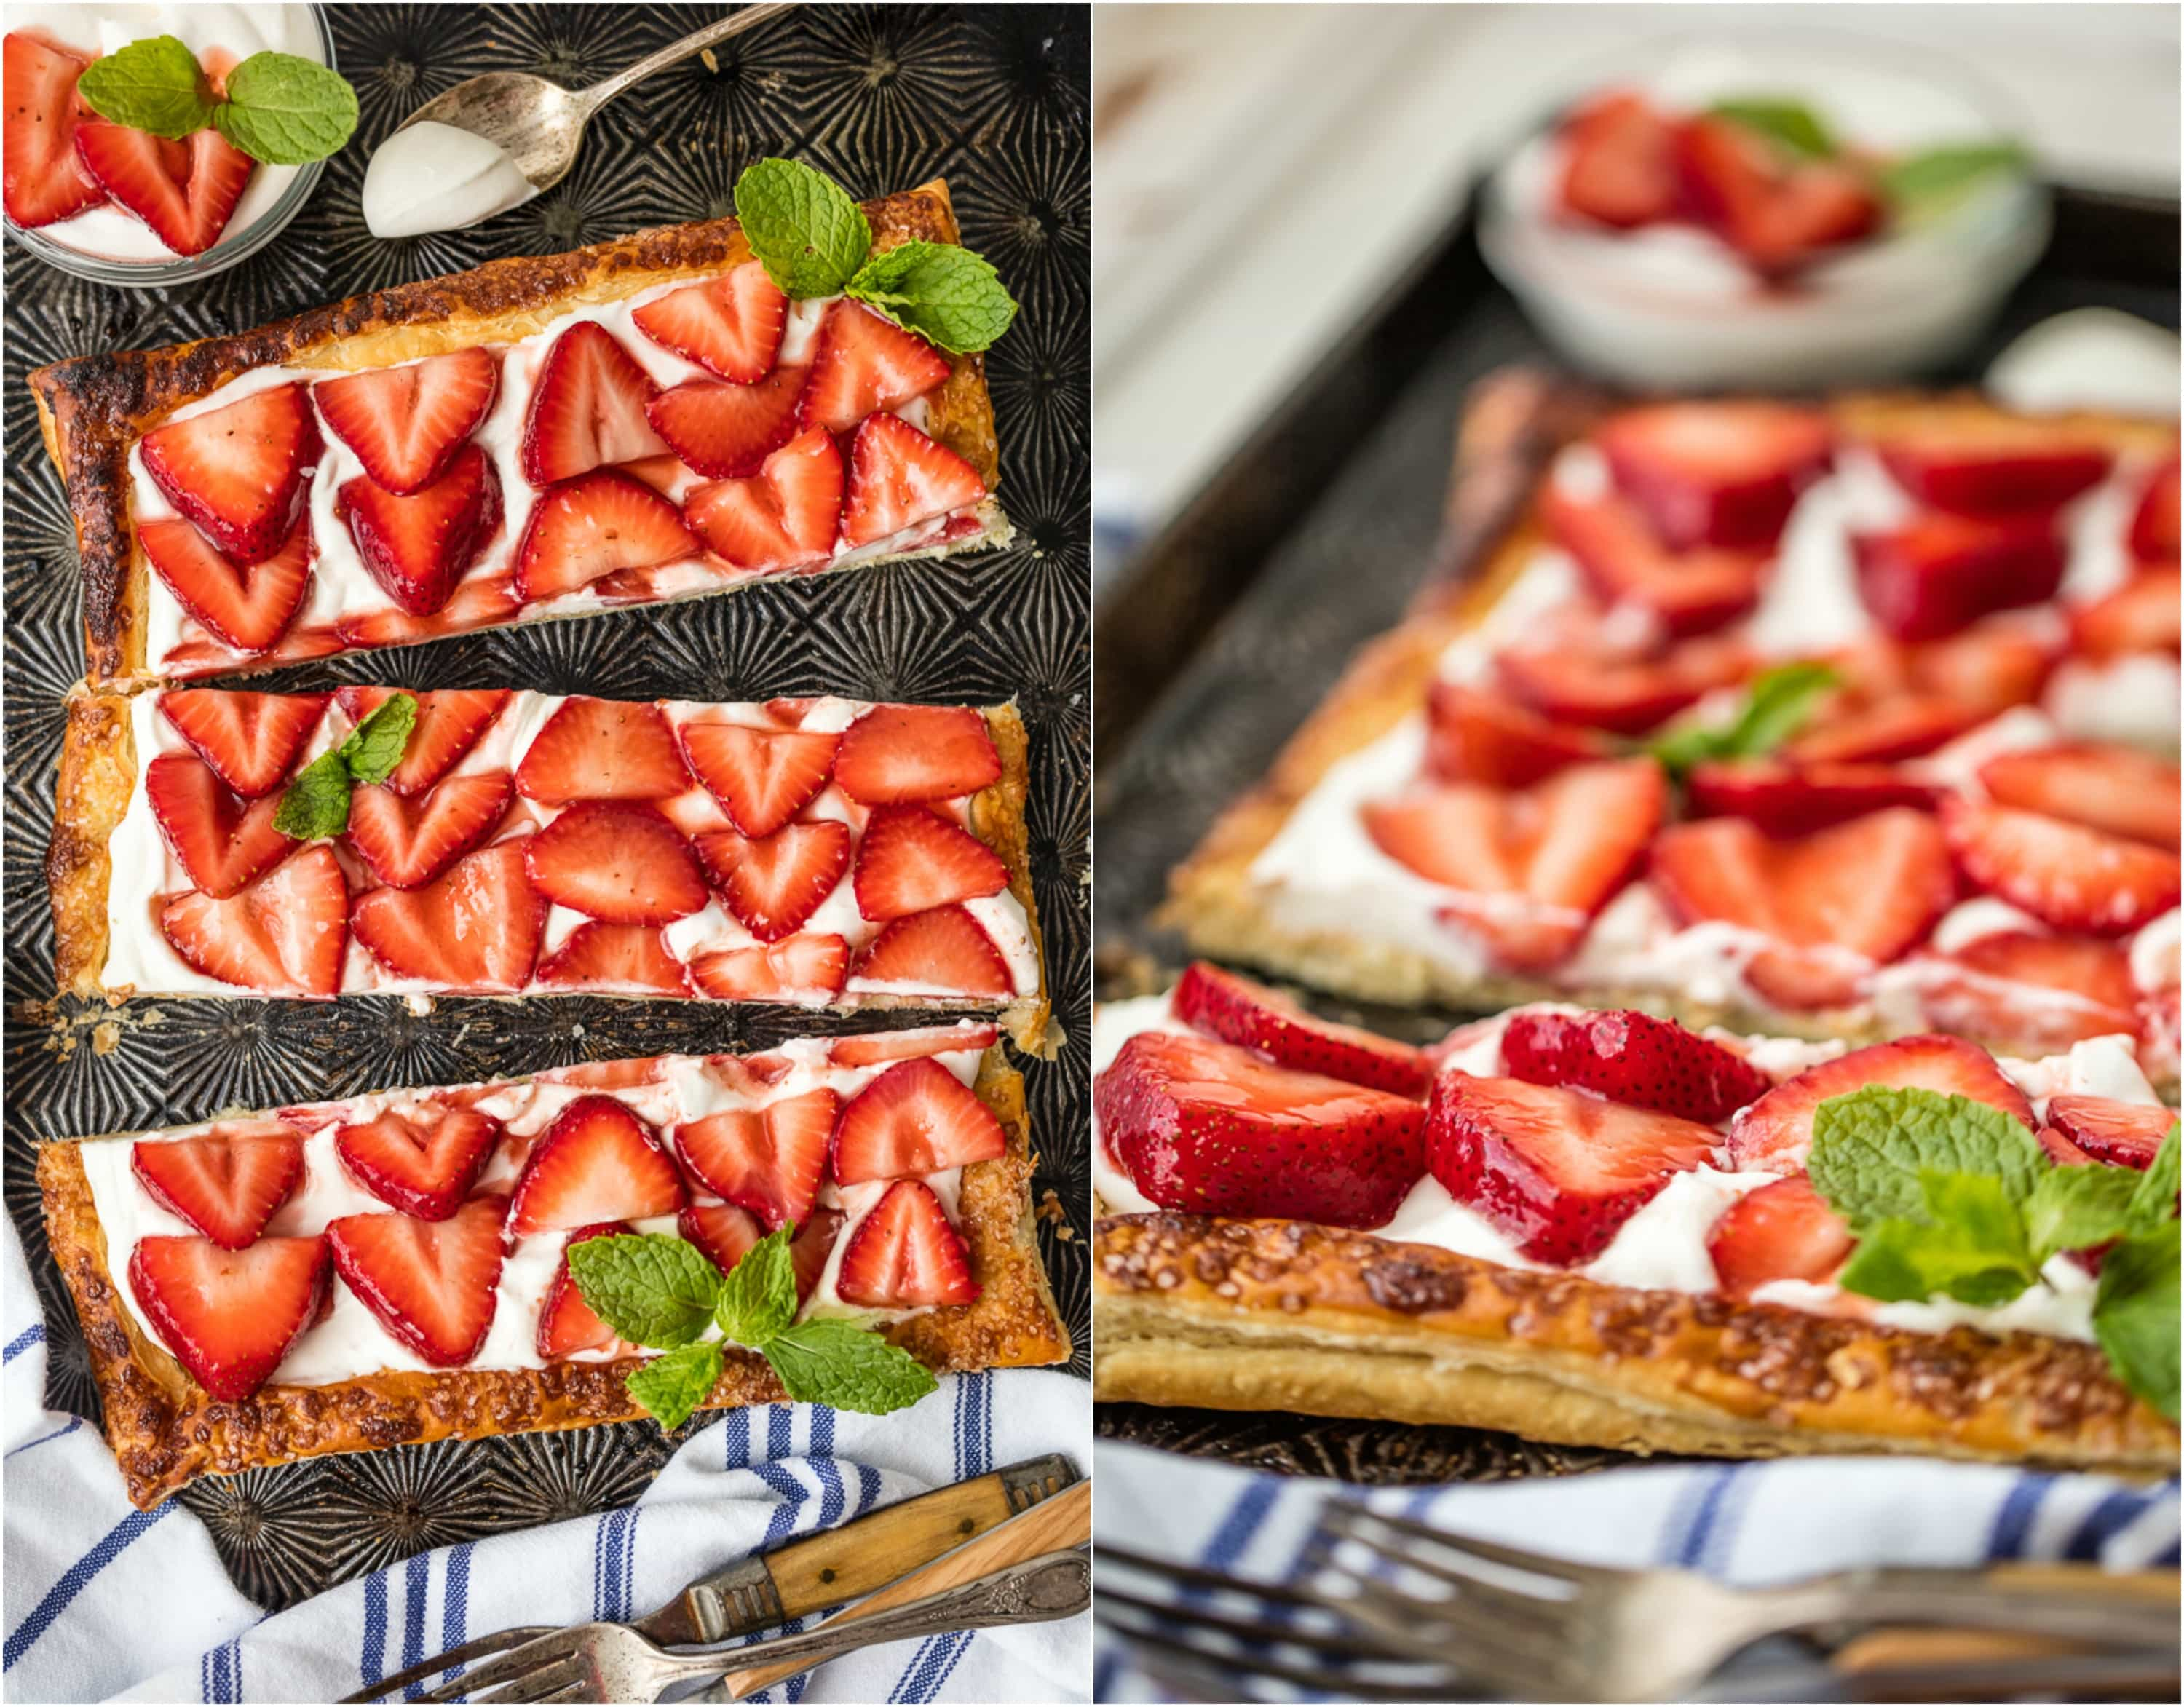 This SUPER EASY PUFF PASTRY STRAWBERRY TART is our favorite simple Summer sweet treat. Made in minutes, it's delicious on its own or topped with vanilla ice cream! I can't get enough!!